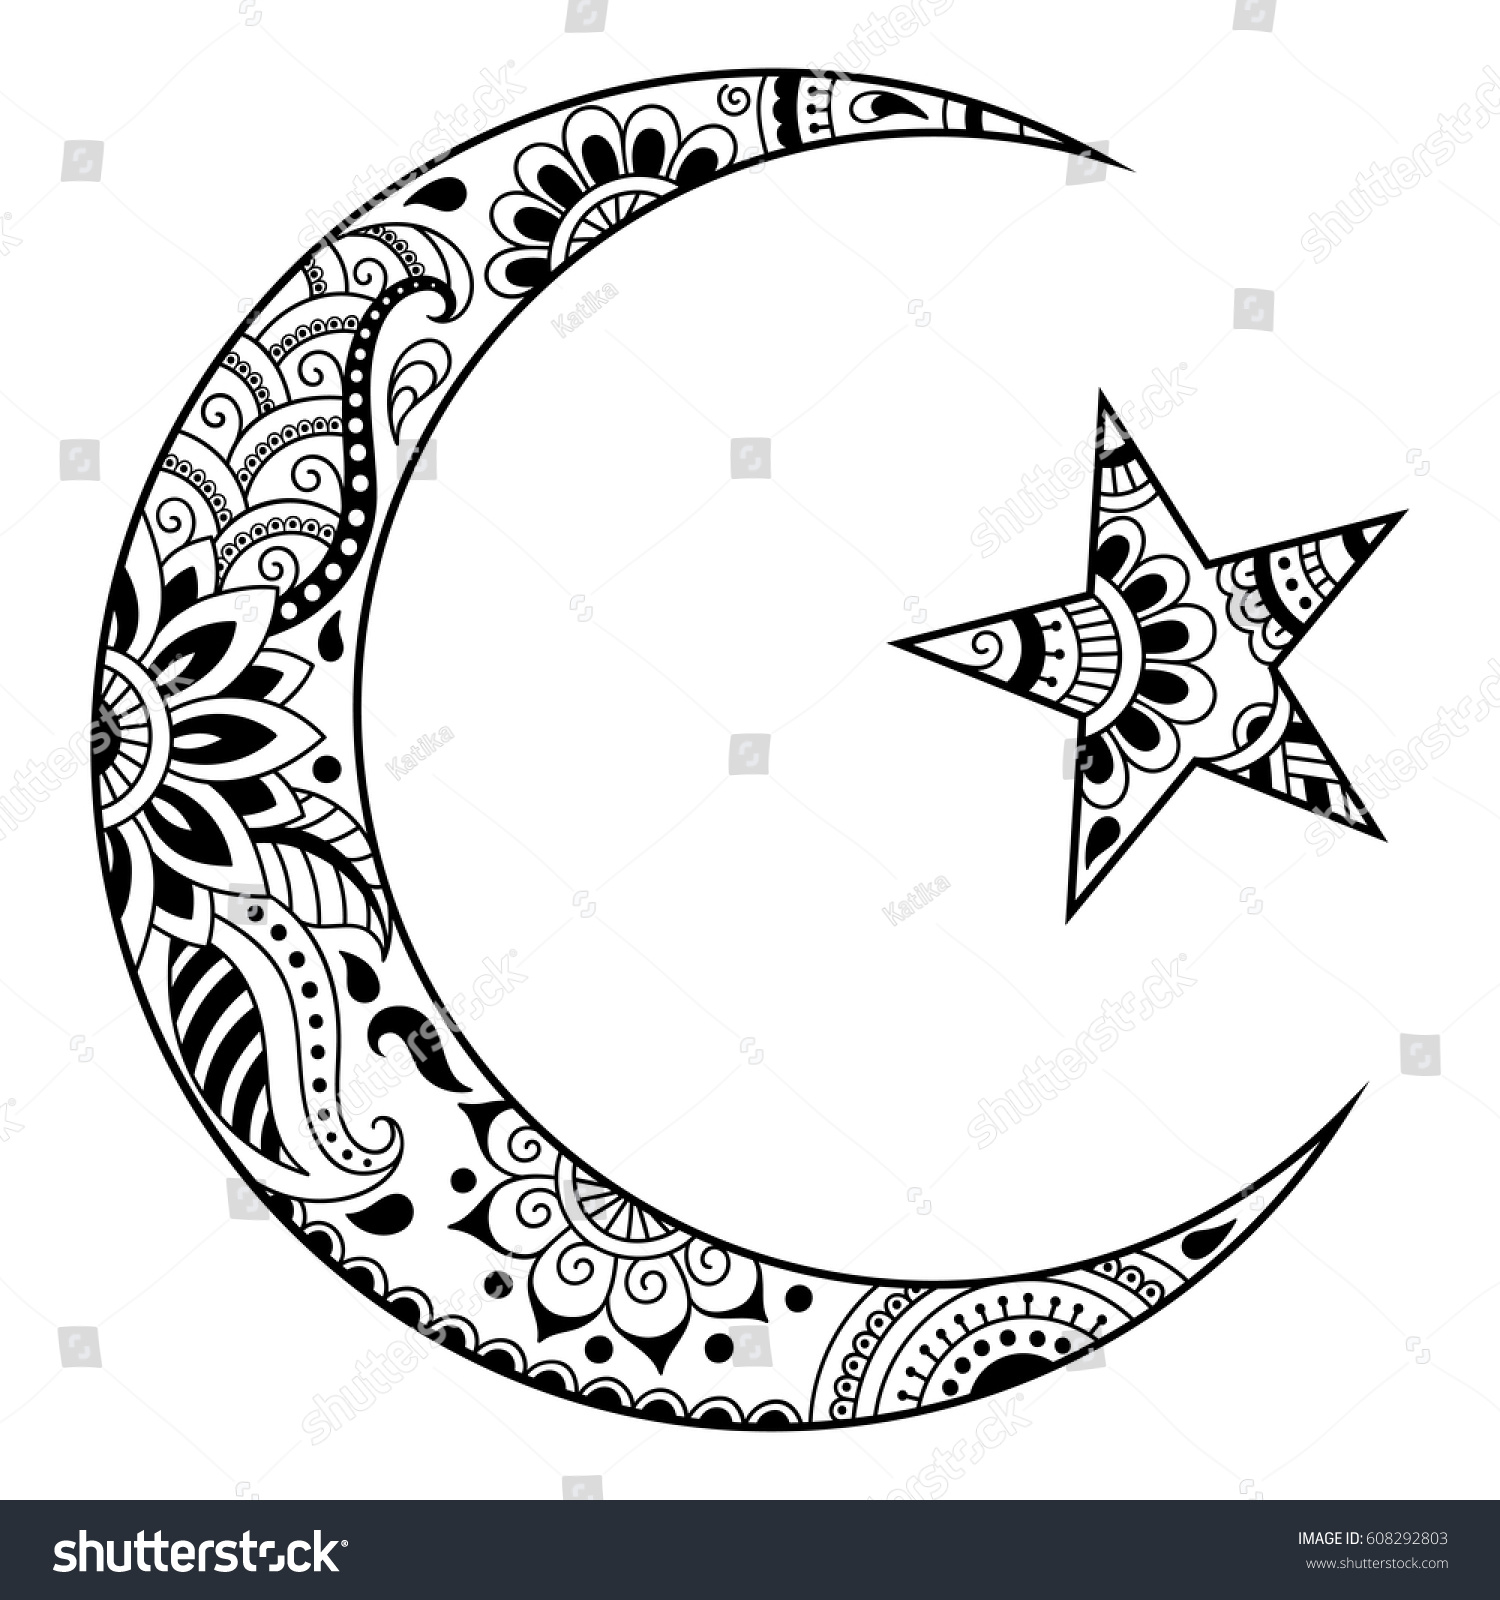 Religious islamic symbol star crescent decorative stock vector religious islamic symbol of the star and the crescent decorative sign for making and tattoos buycottarizona